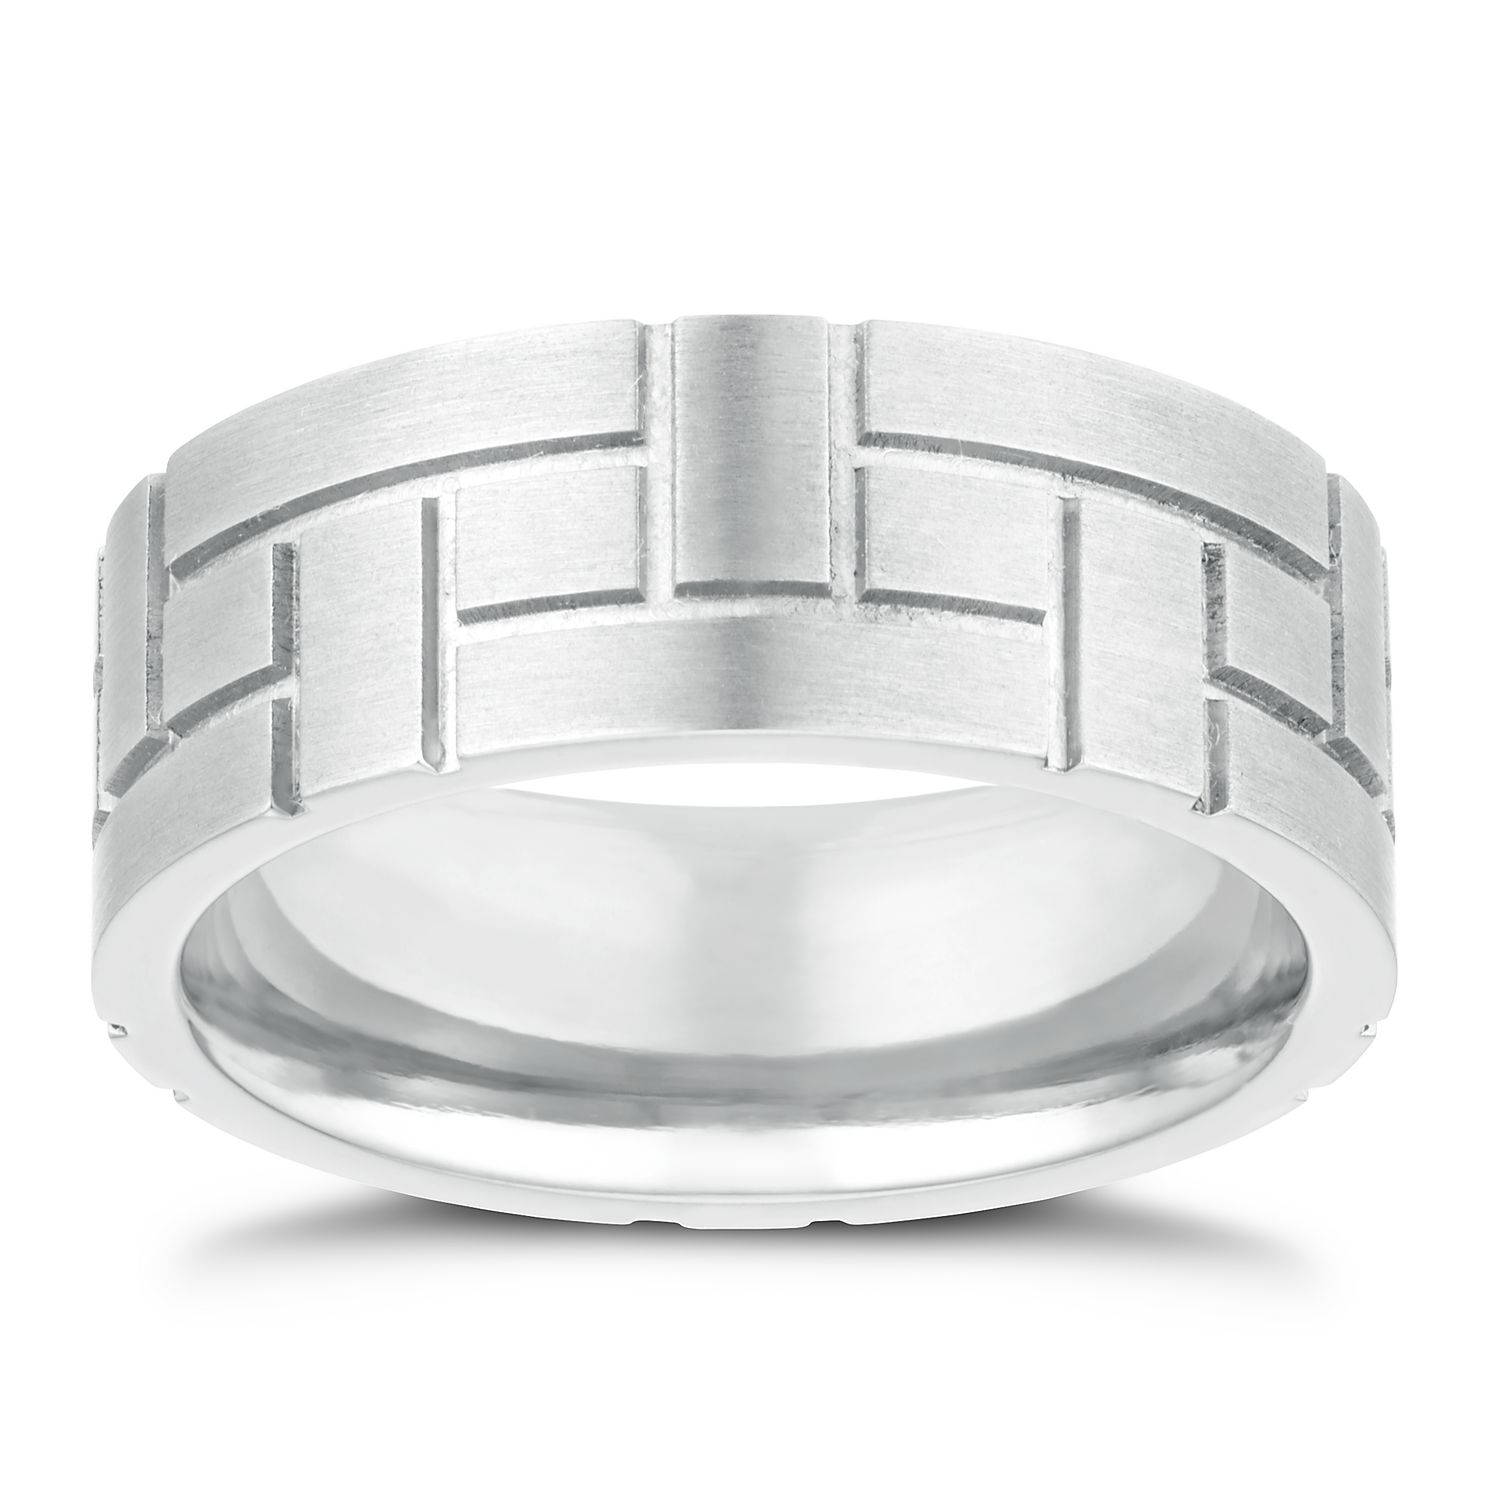 Titanium 8mm Woven Design Ring - Product number 3267008